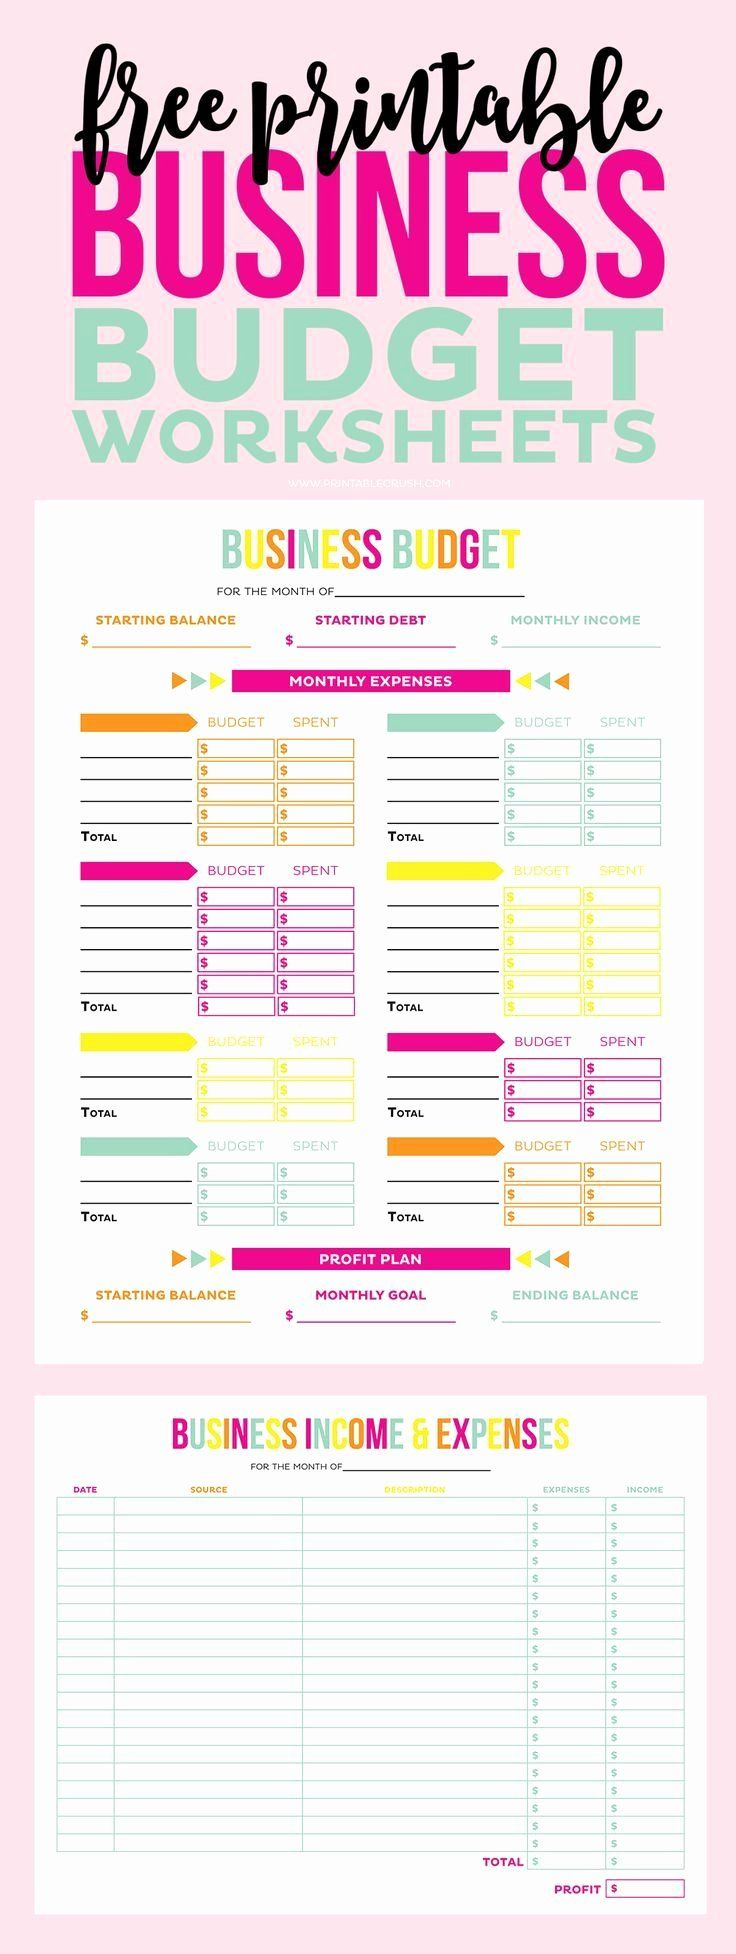 Small Business Budget Template Lovely Make Tax Time A Little Less So With These Free Printable Budgeting Worksheets Business Budget Template Budgeting